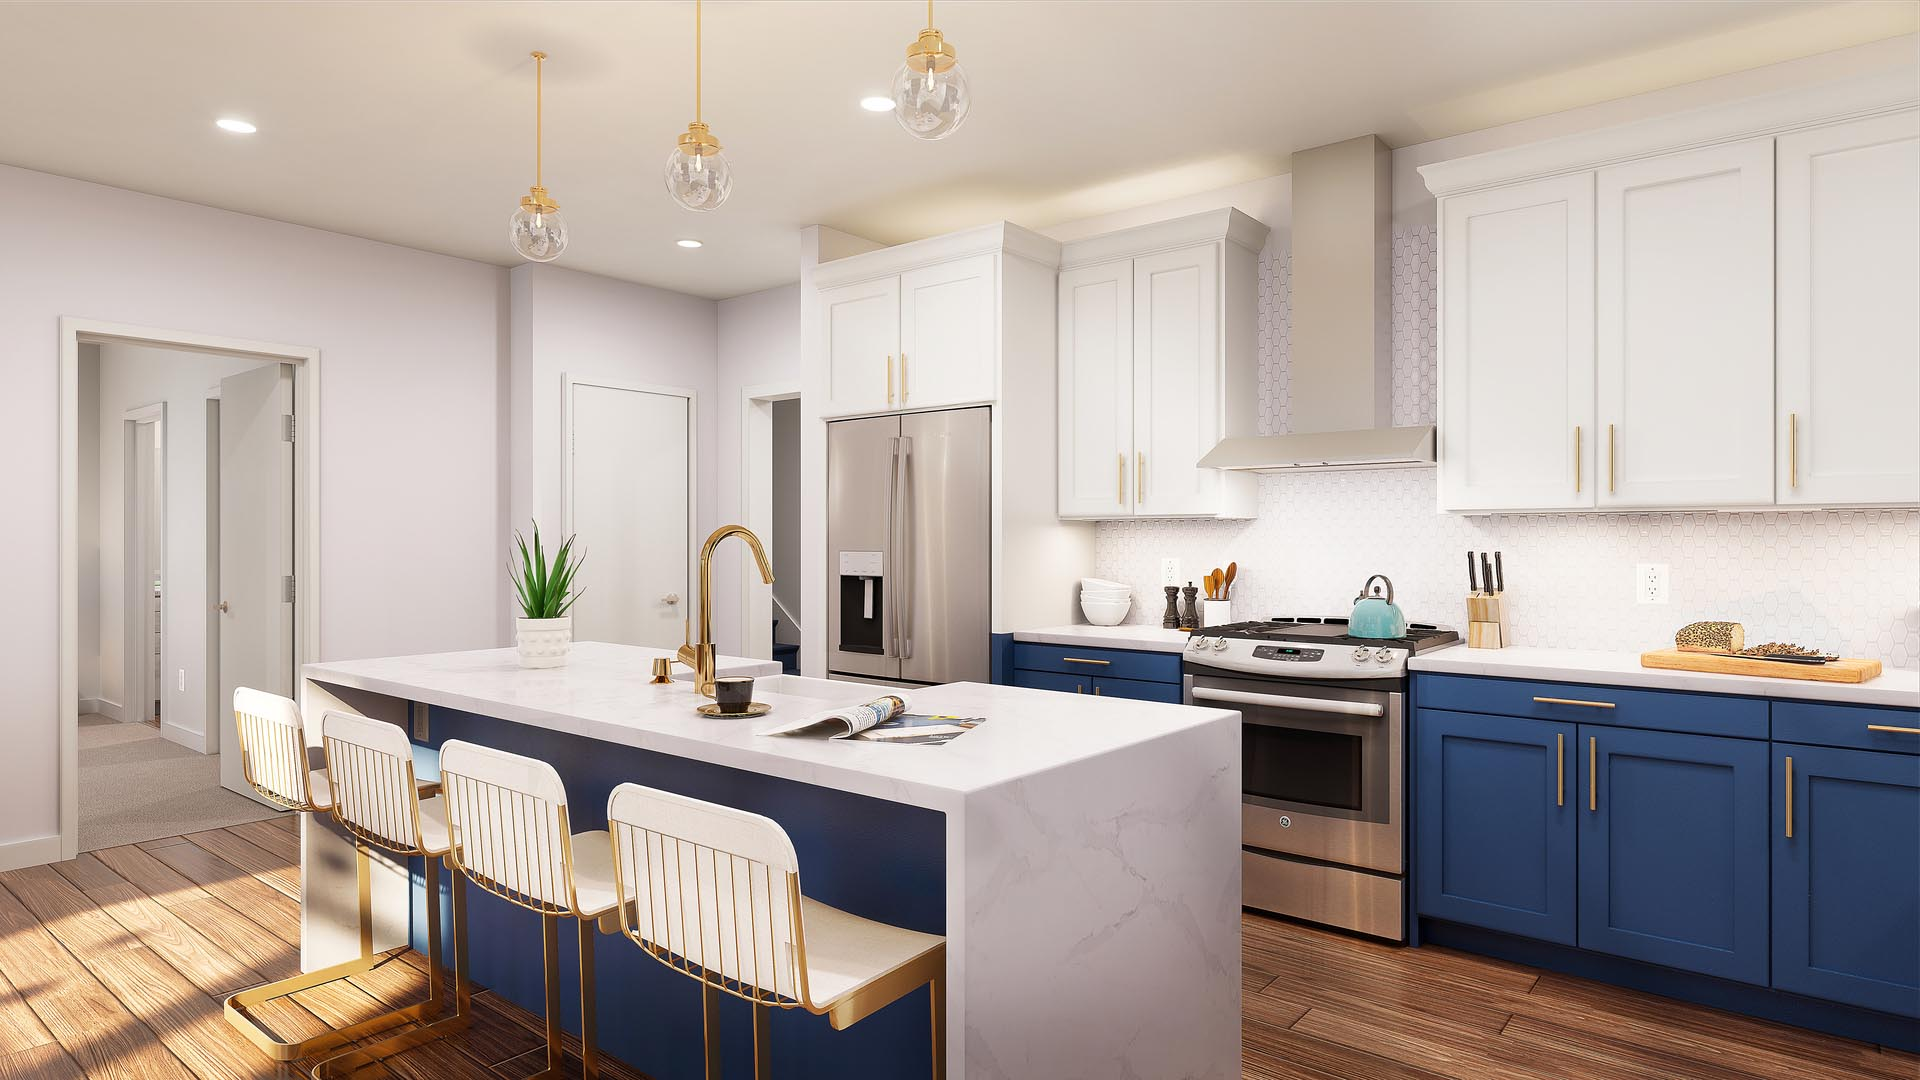 An apartment kitchen and island with beautiful finishes